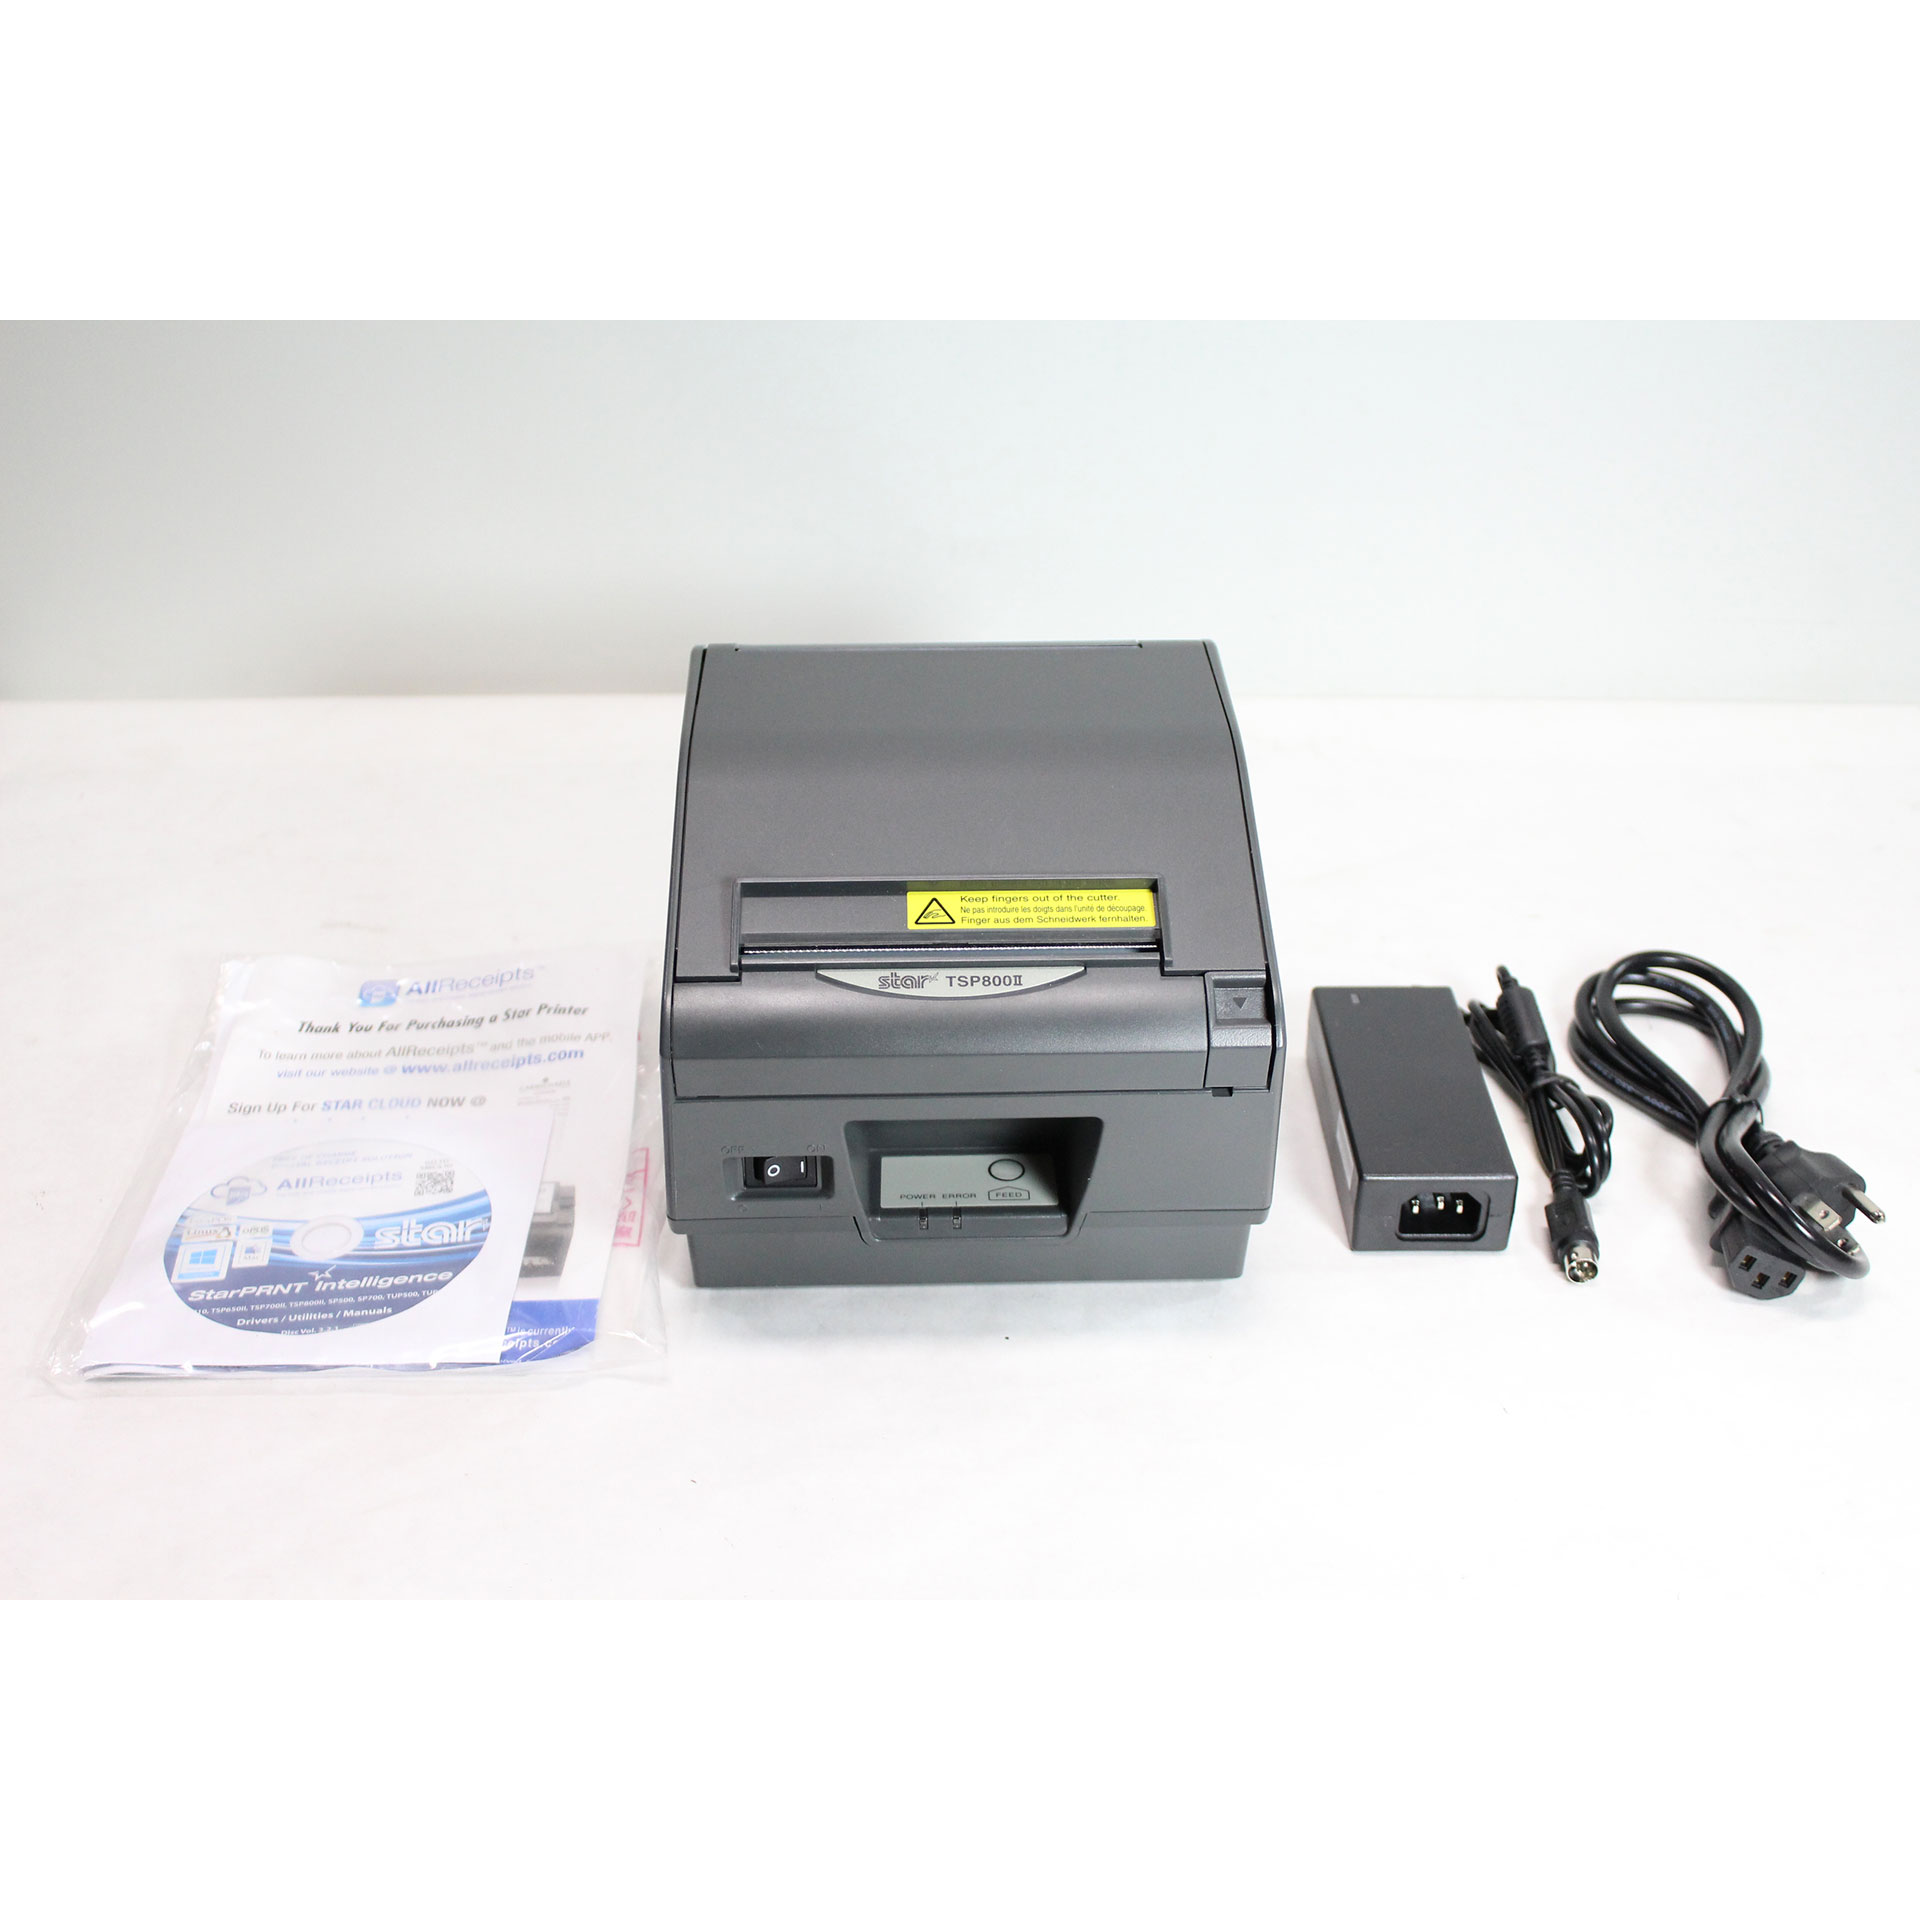 Star TSP800IIWebPRNT-24 Receipt Printer Direct Thermal TSP800